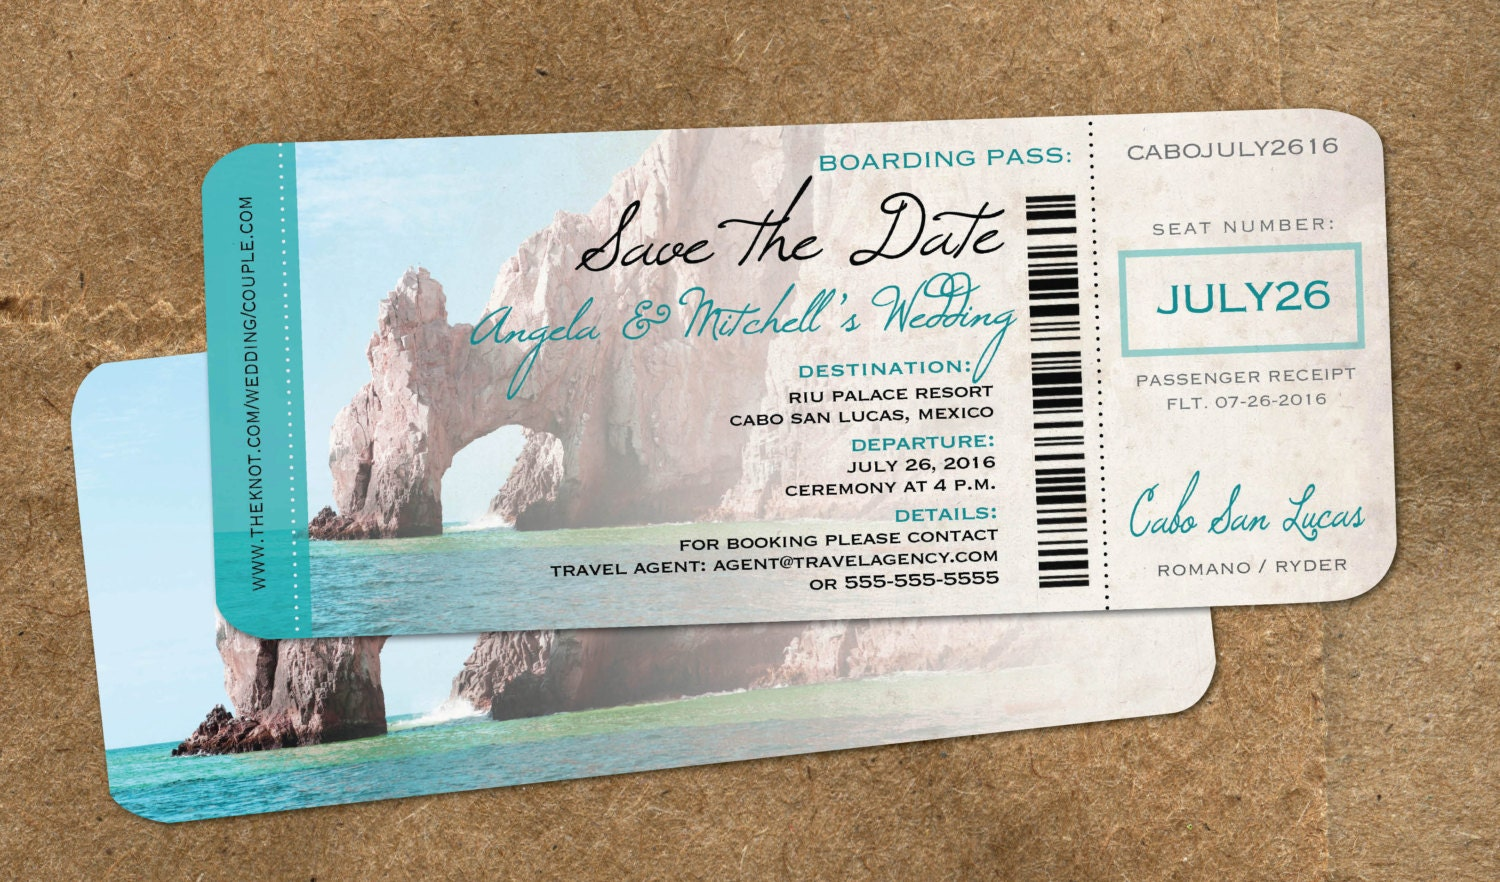 Wedding in Cabo Save the Date Boarding Pass Cabo Mexico